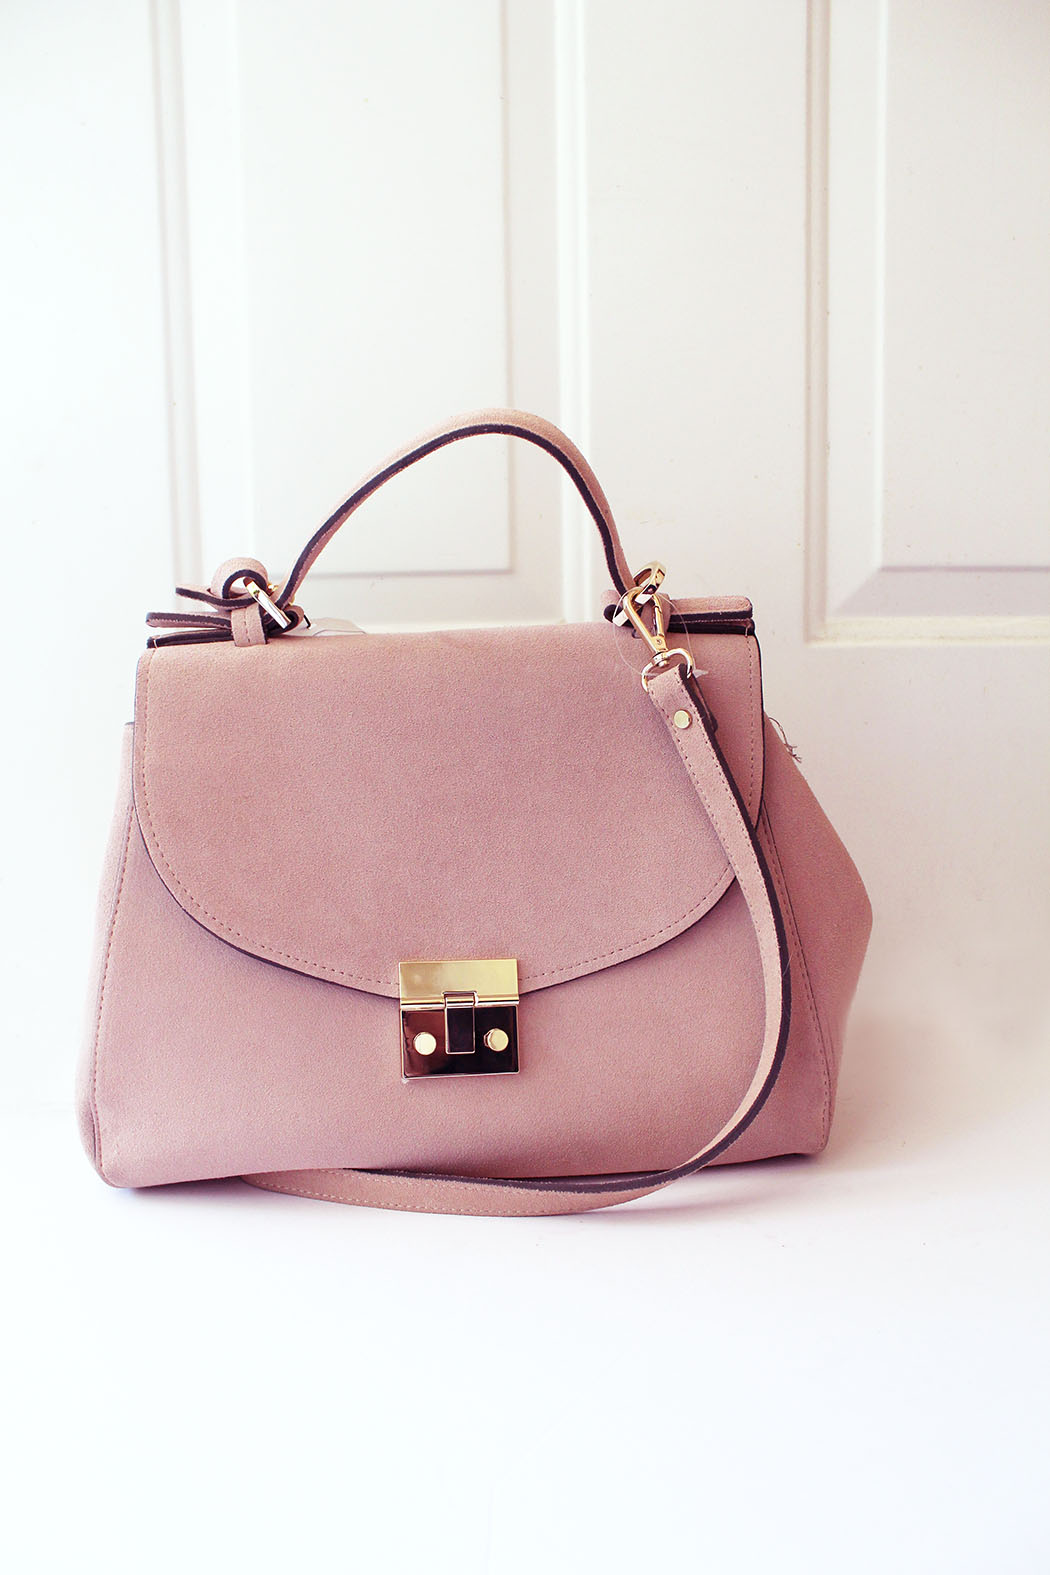 A Dusty Pink Satchel From Zara and a Lovely Way to Say Hello to ...